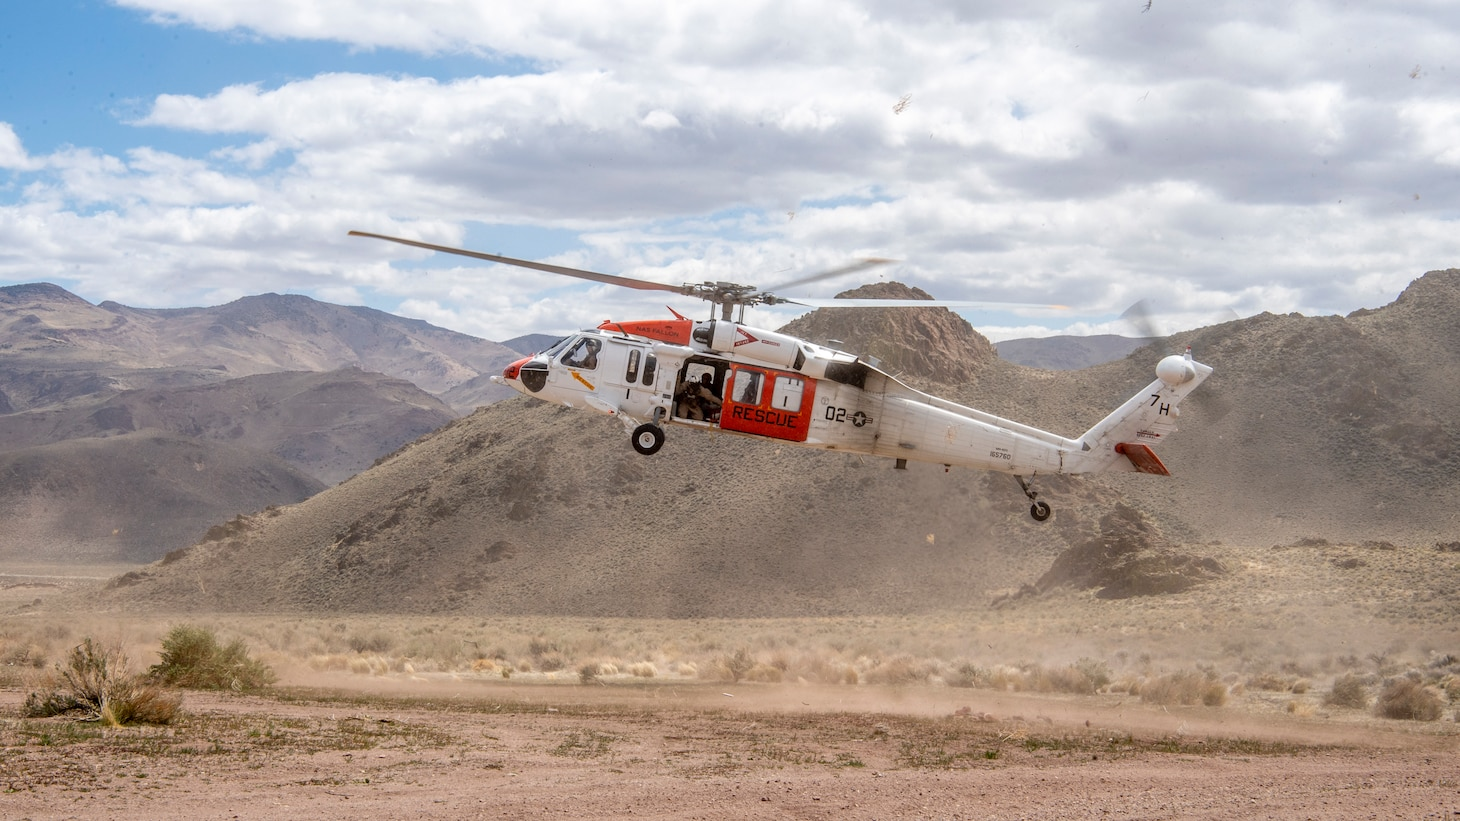 """An MH-60S Knighthawk helicopter, assigned to the """"Longhorns"""" of Helicopter Search and Rescue (SAR) Squadron, conducts a flight maneuver during a simulated SAR training exercise."""